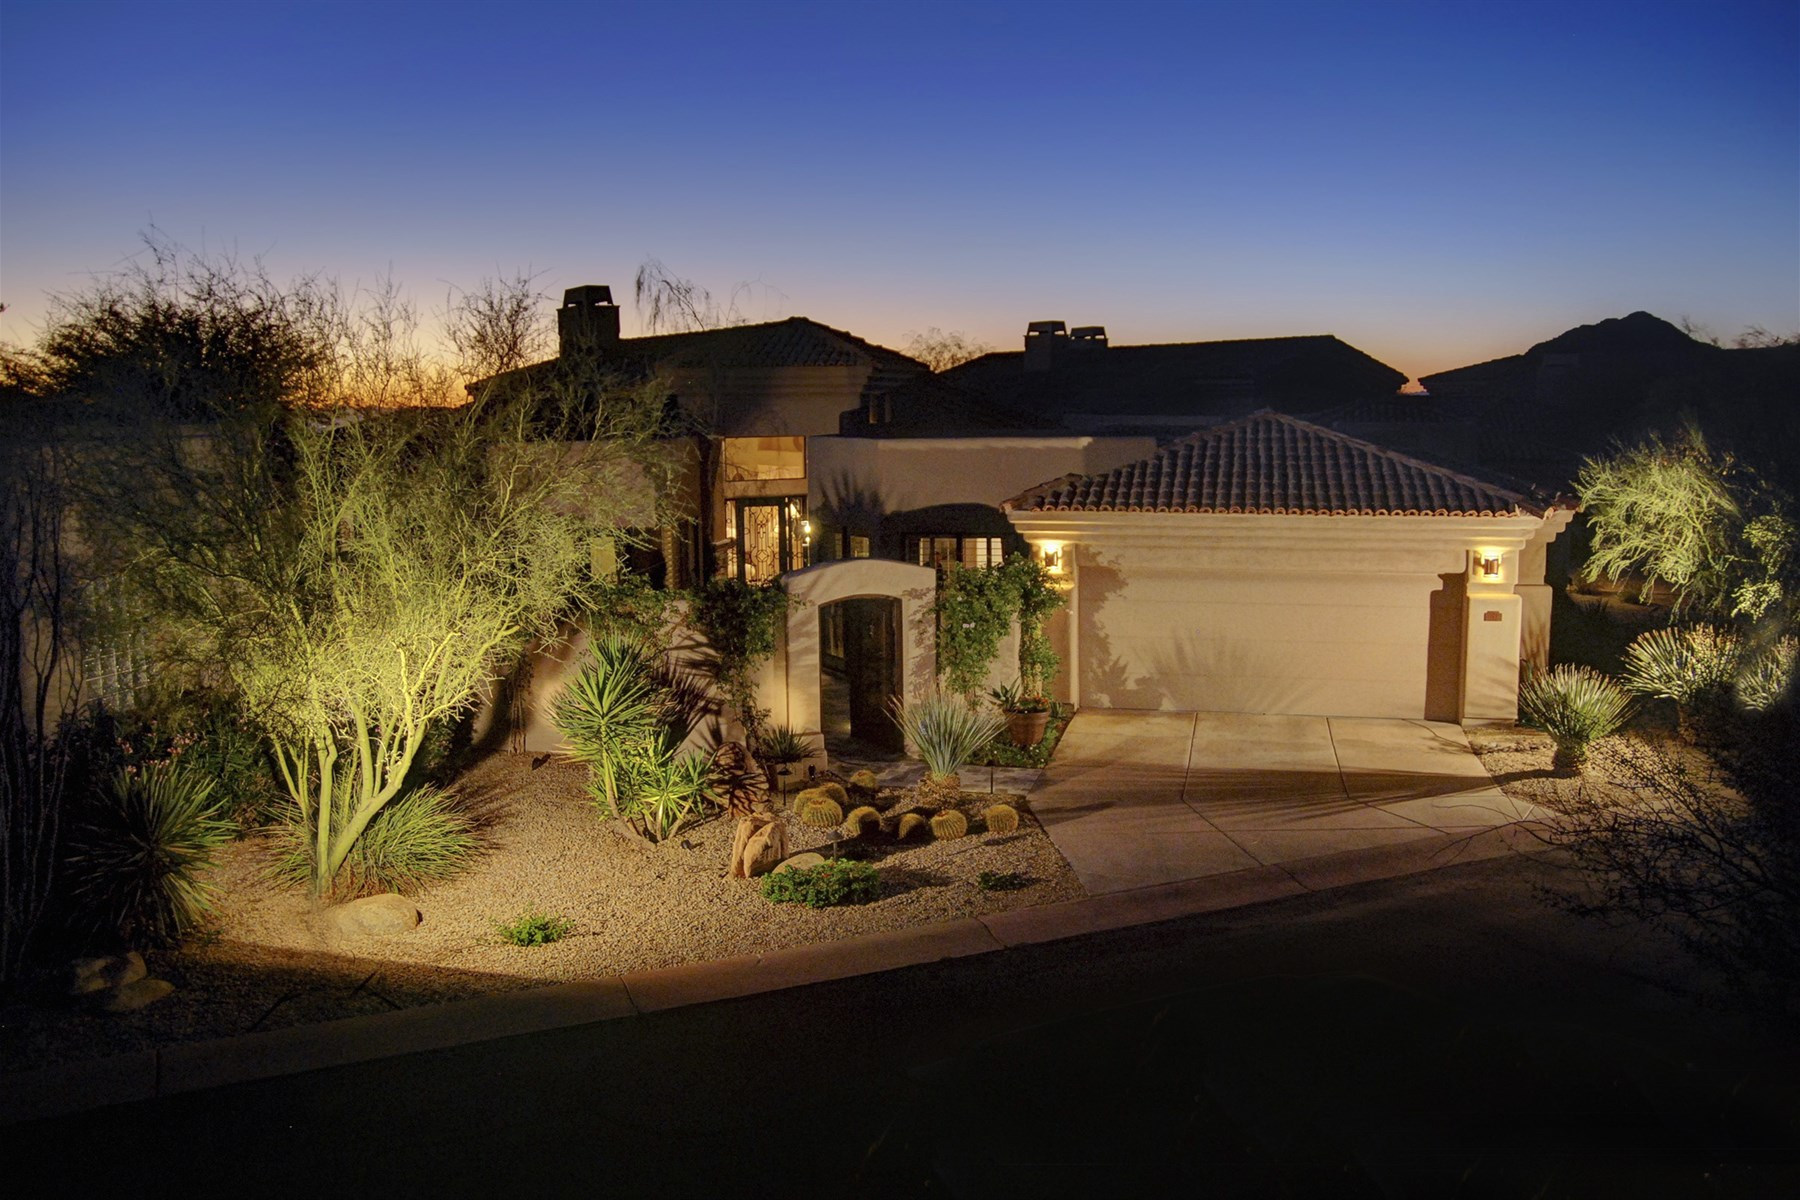 Maison unifamiliale pour l Vente à Stunning home in one of Troon's most desirable gated communities 24350 N Whispering Ridge Way 31 Scottsdale, Arizona 85255 États-Unis